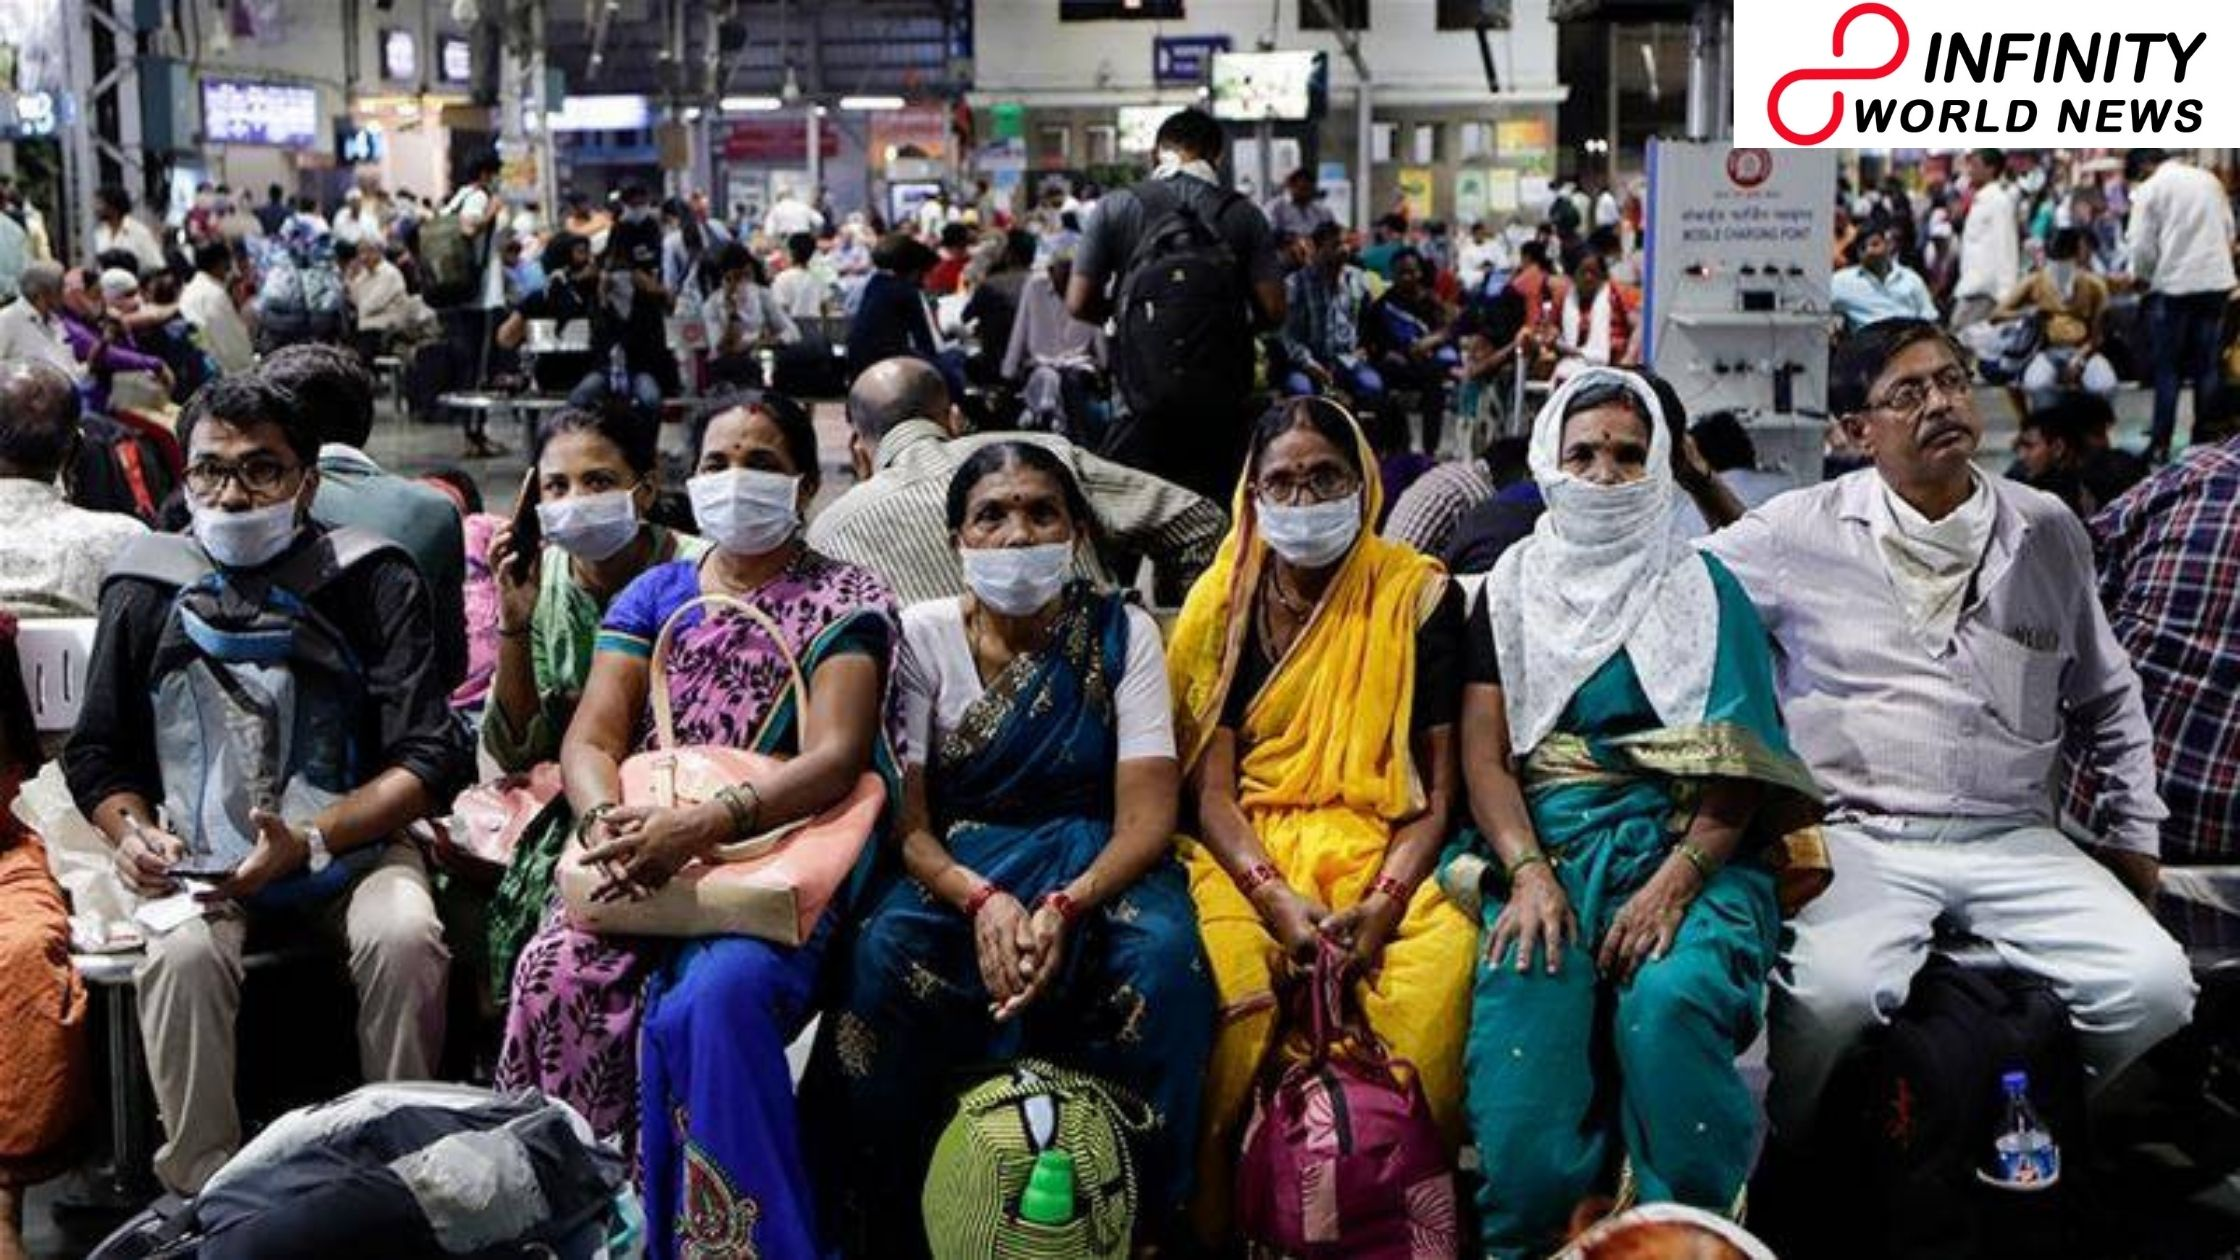 Chinese scientists currently guarantee COVID-19 infection started in India